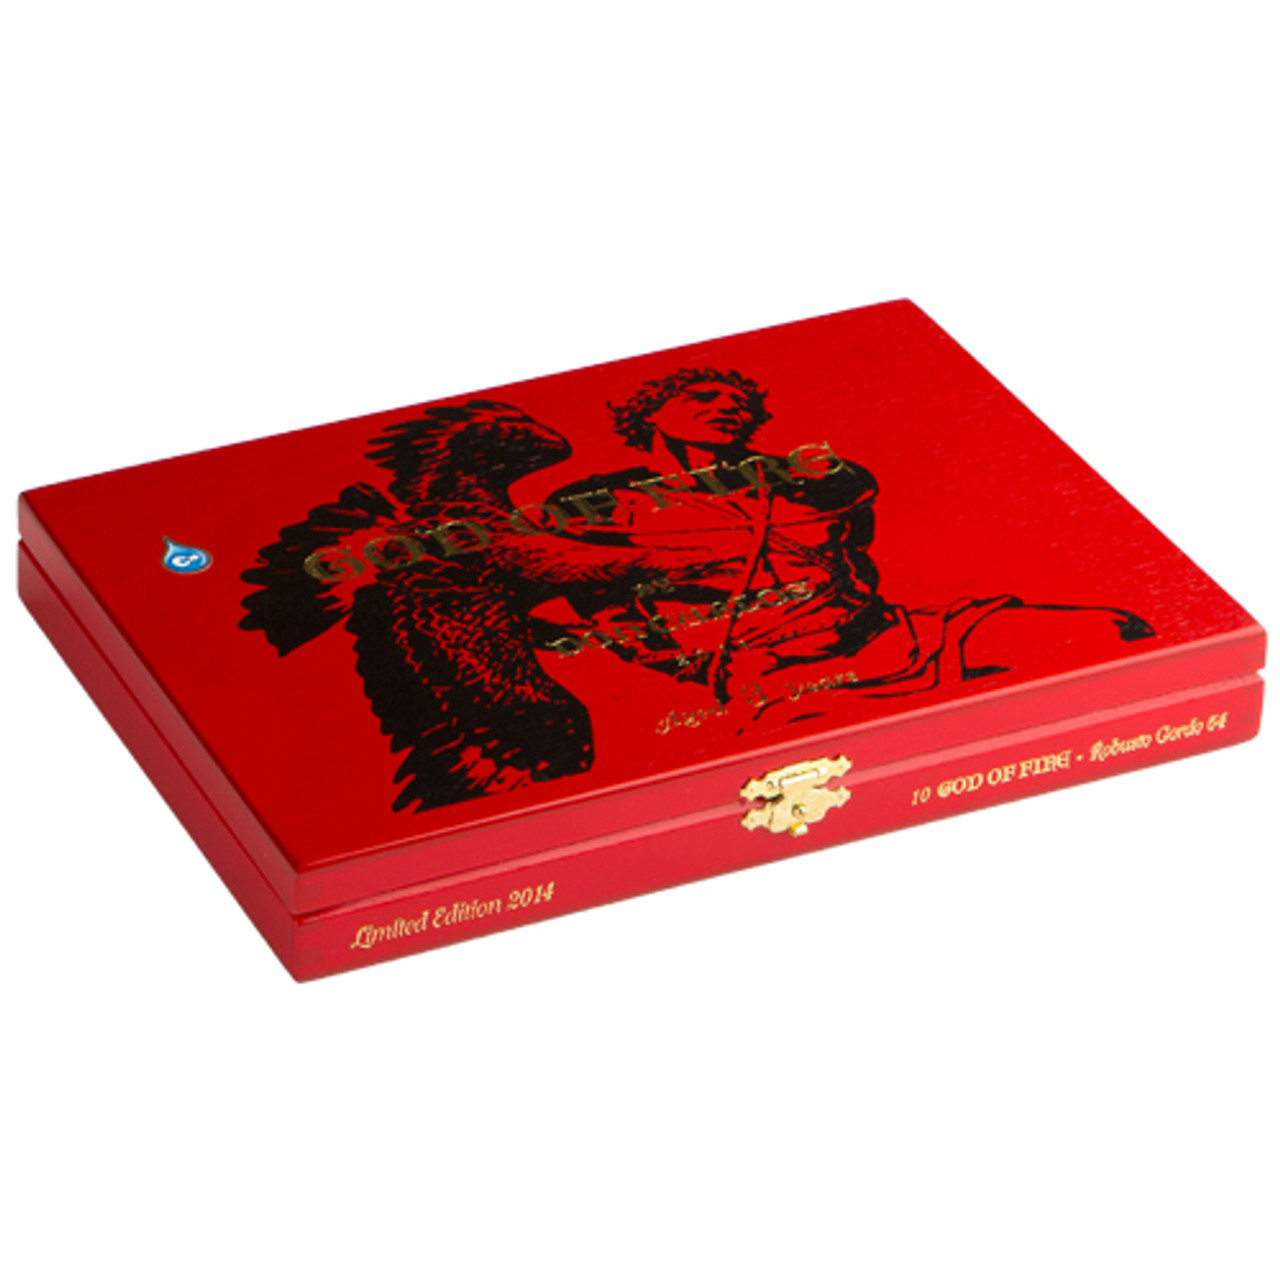 God of Fire by Don Carlos Toro Cigars - 6 x 50 (Box of 10)